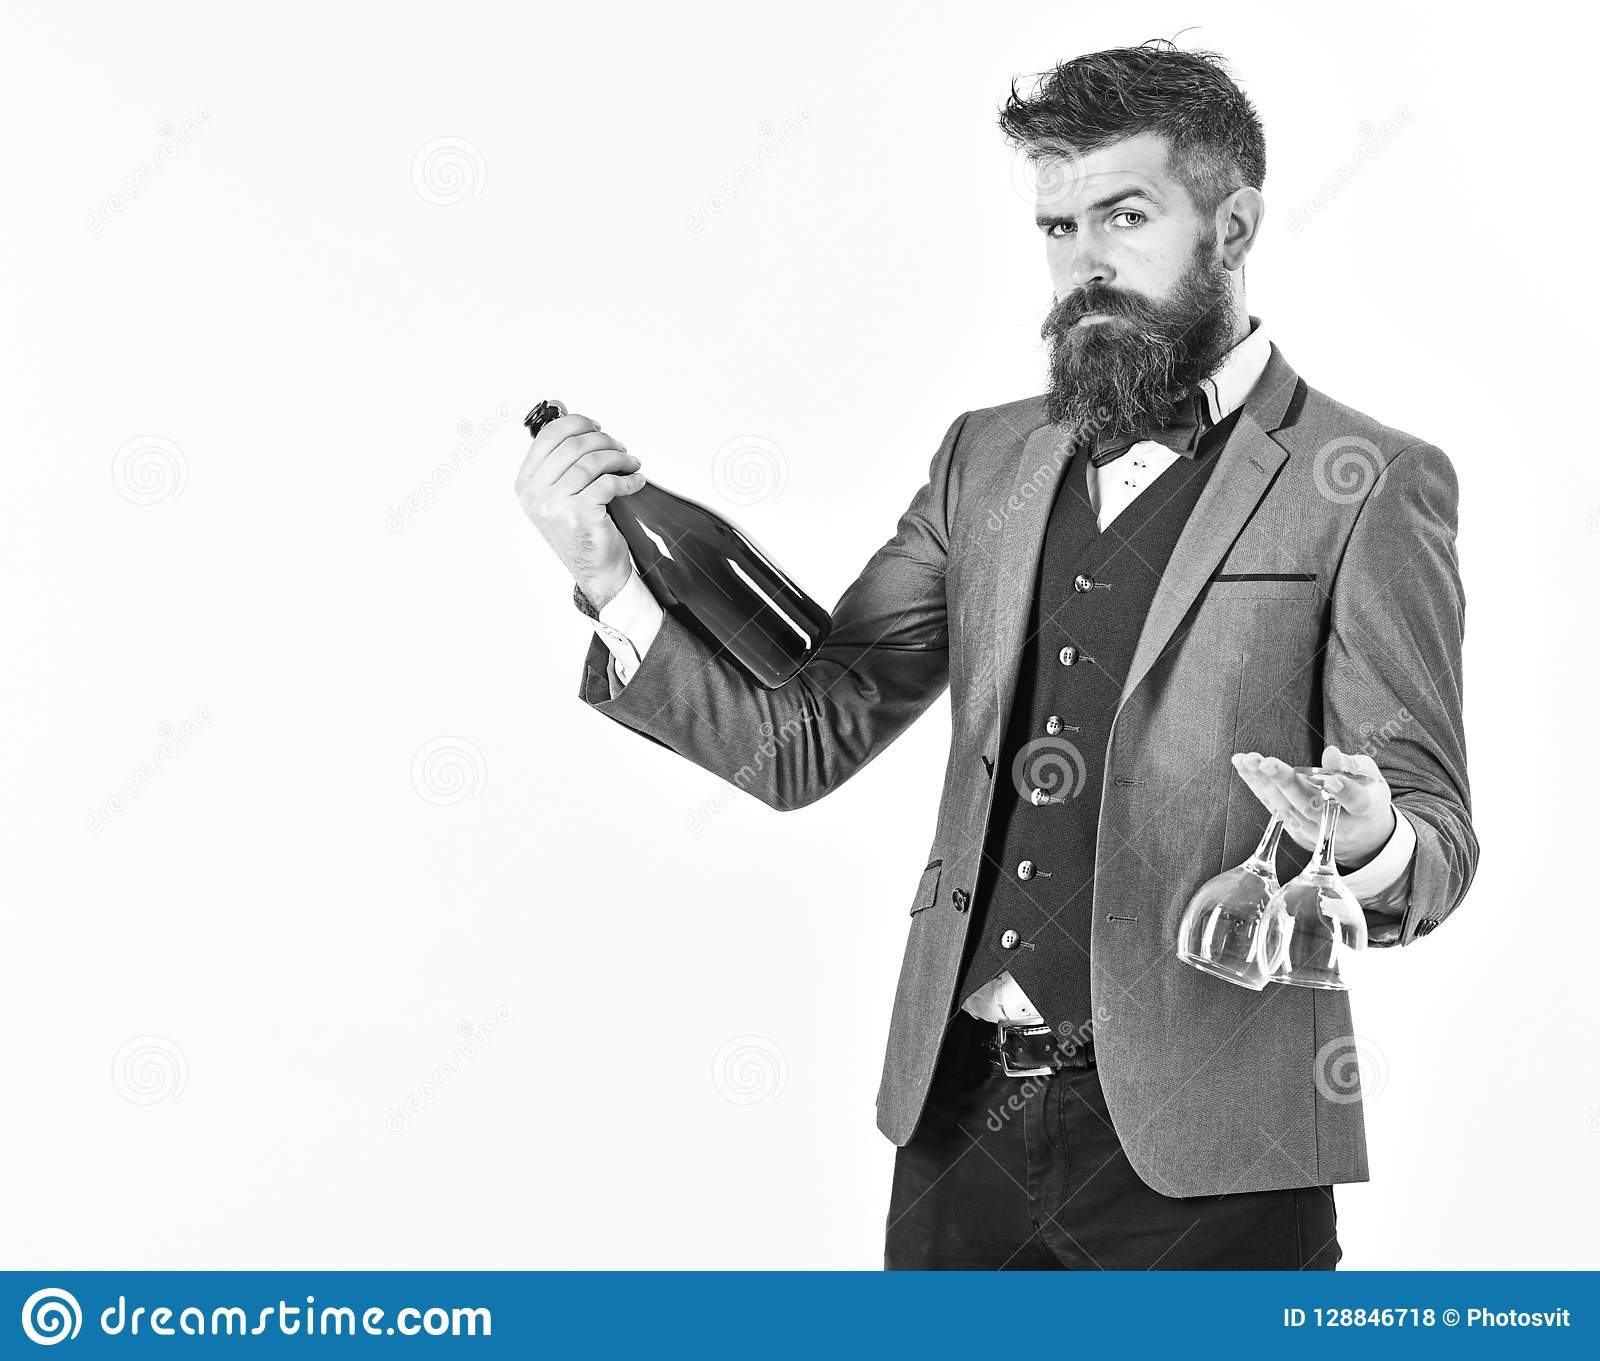 Perfect service, good manners, alcohol concept. Waiter with elegant suit, bow tie and handsome face. Mature man holds